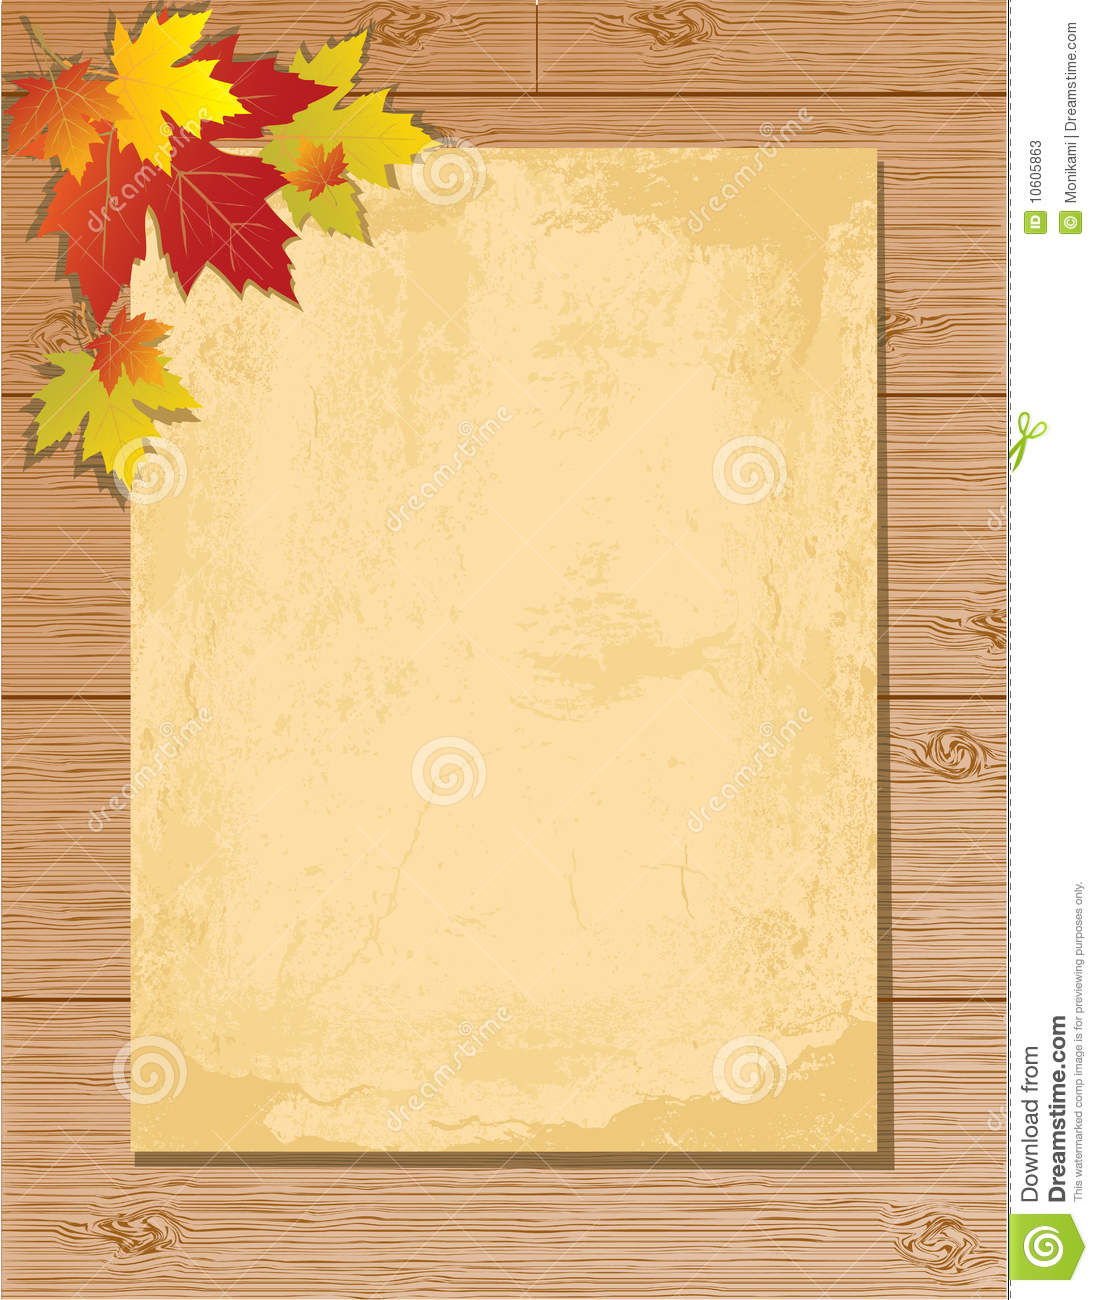 Old Paper Letter On Wooden Background Stock Photos - Image: 10605863